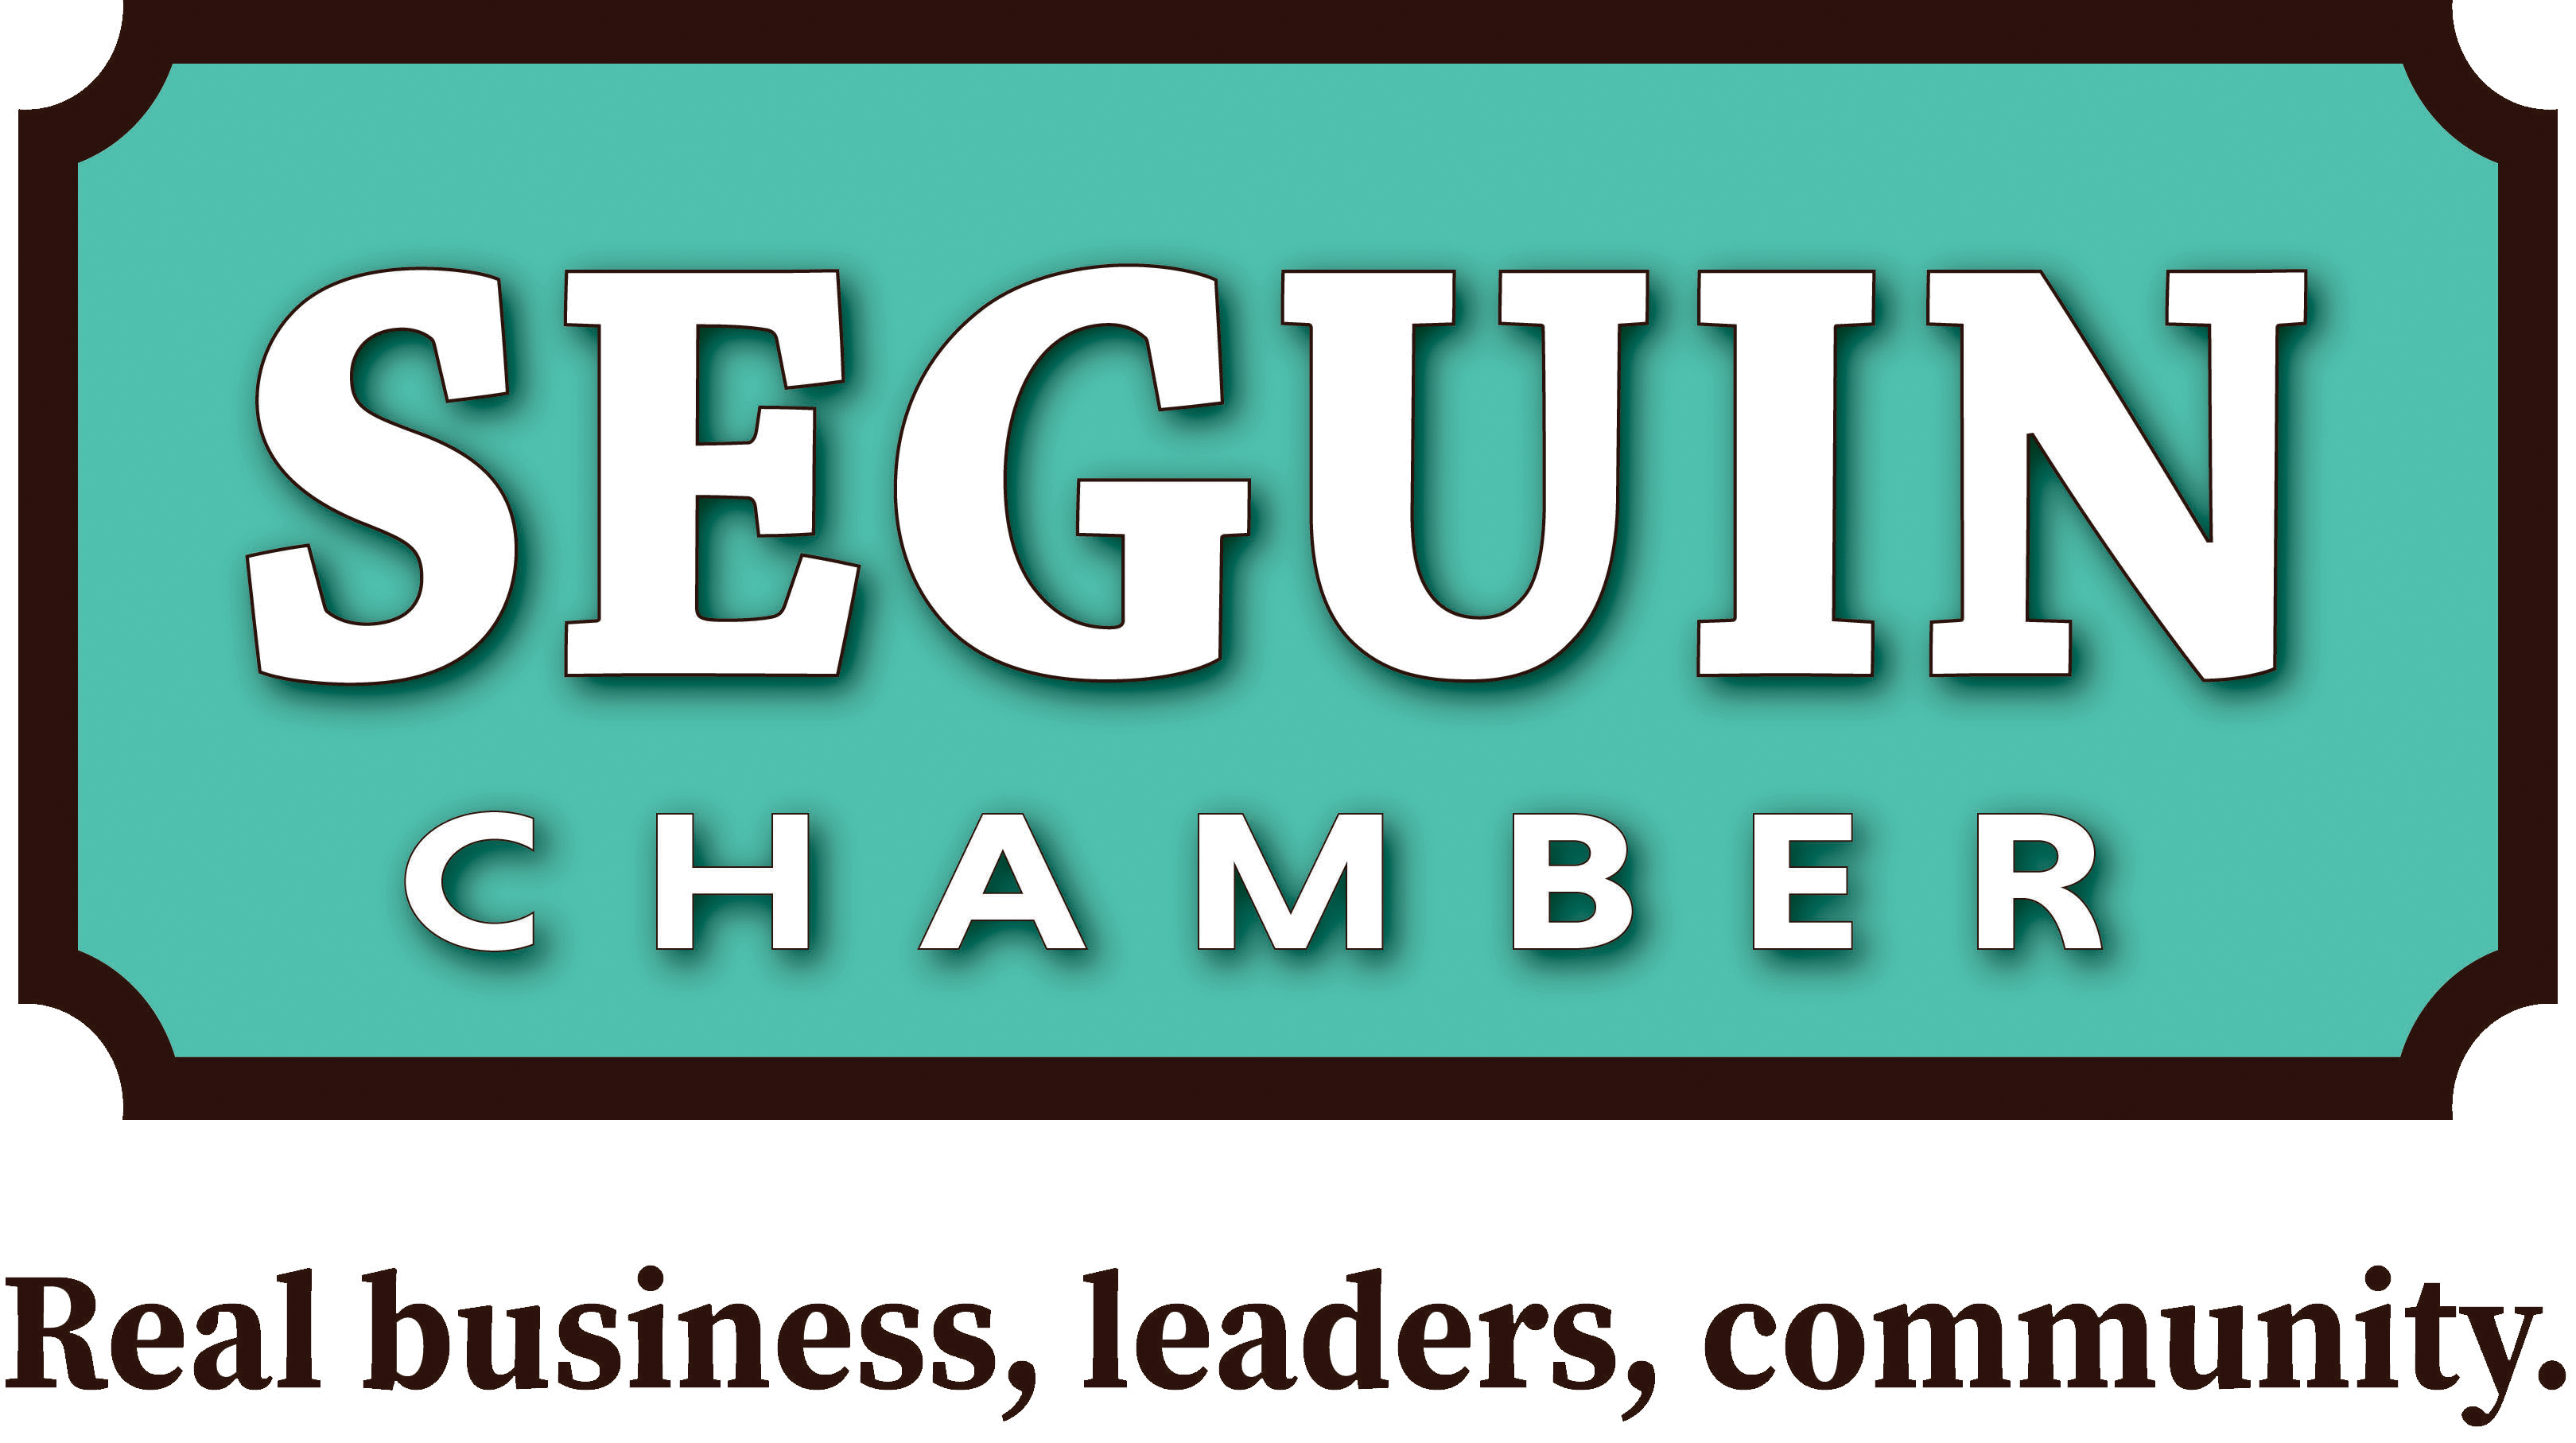 Seguin Chamber passes resolution to work to stop lakes' draining